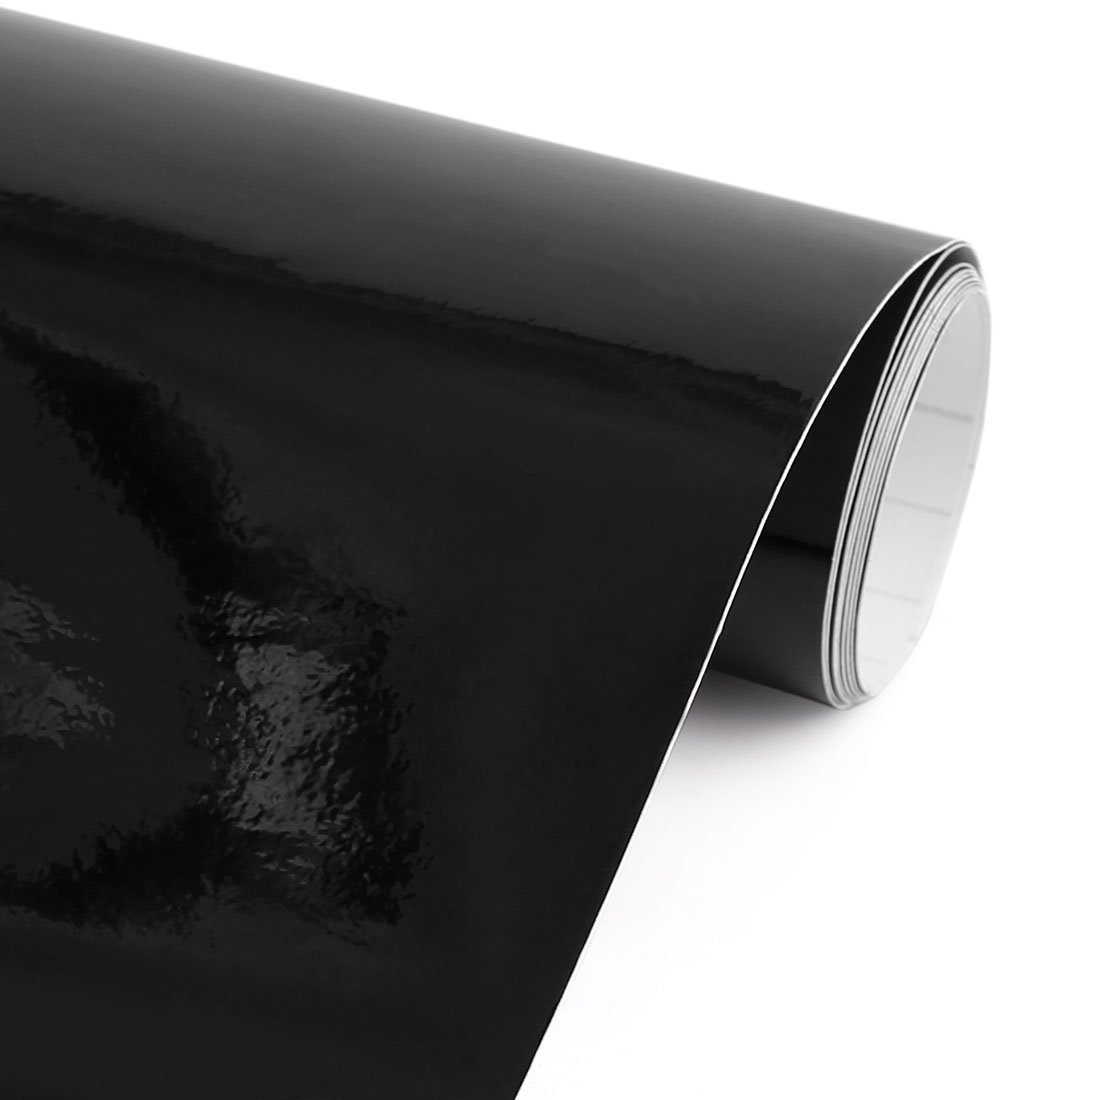 uxcell/® Gloss Red Bubble Free Self Adhesive Car Vinyl Film Wrap Sticker Decal 152cm x 30cm